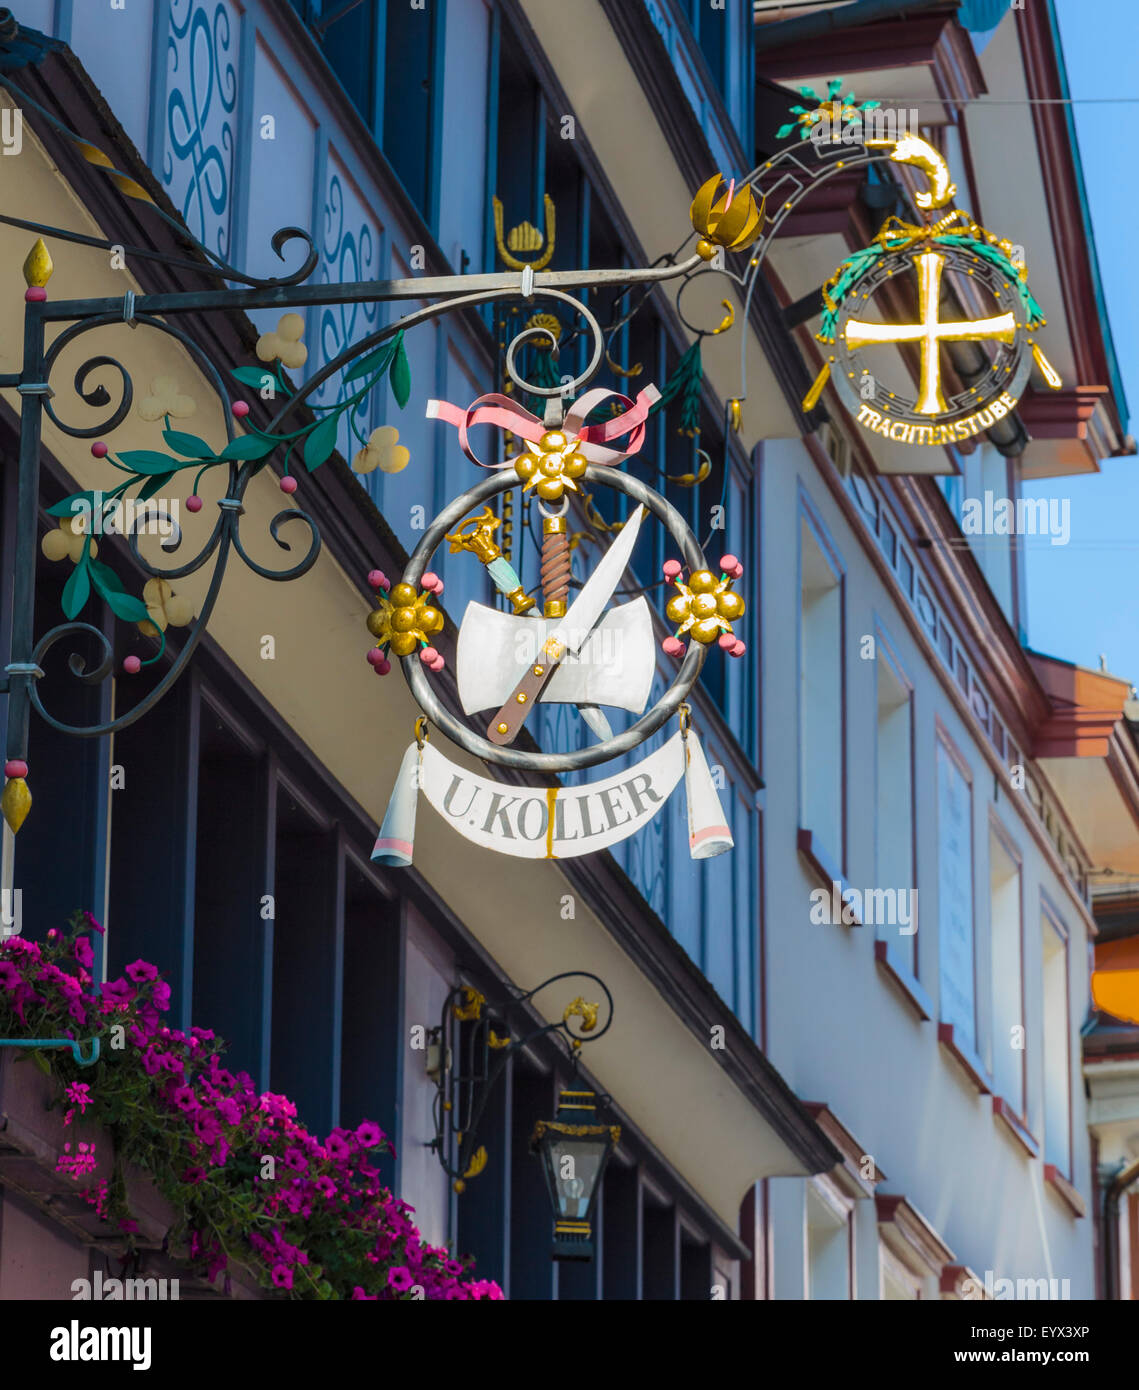 Appenzell, Appenzell Innerrhoden Canton, Switzerland.  Sign in front of Koller's butcher shop in Hauptgasse. - Stock Image